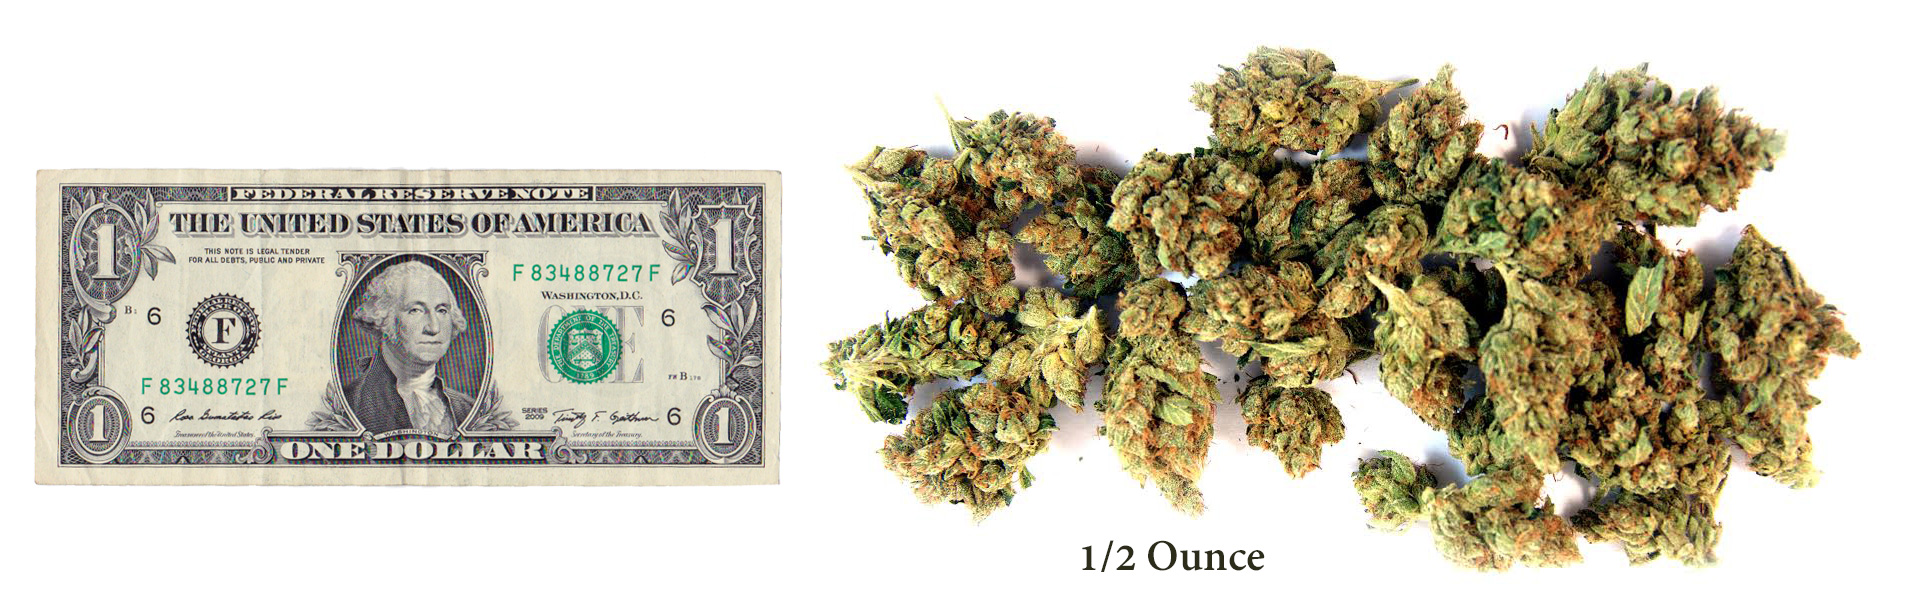 how much is a gram, quarter, half ounce of weed? | greenito